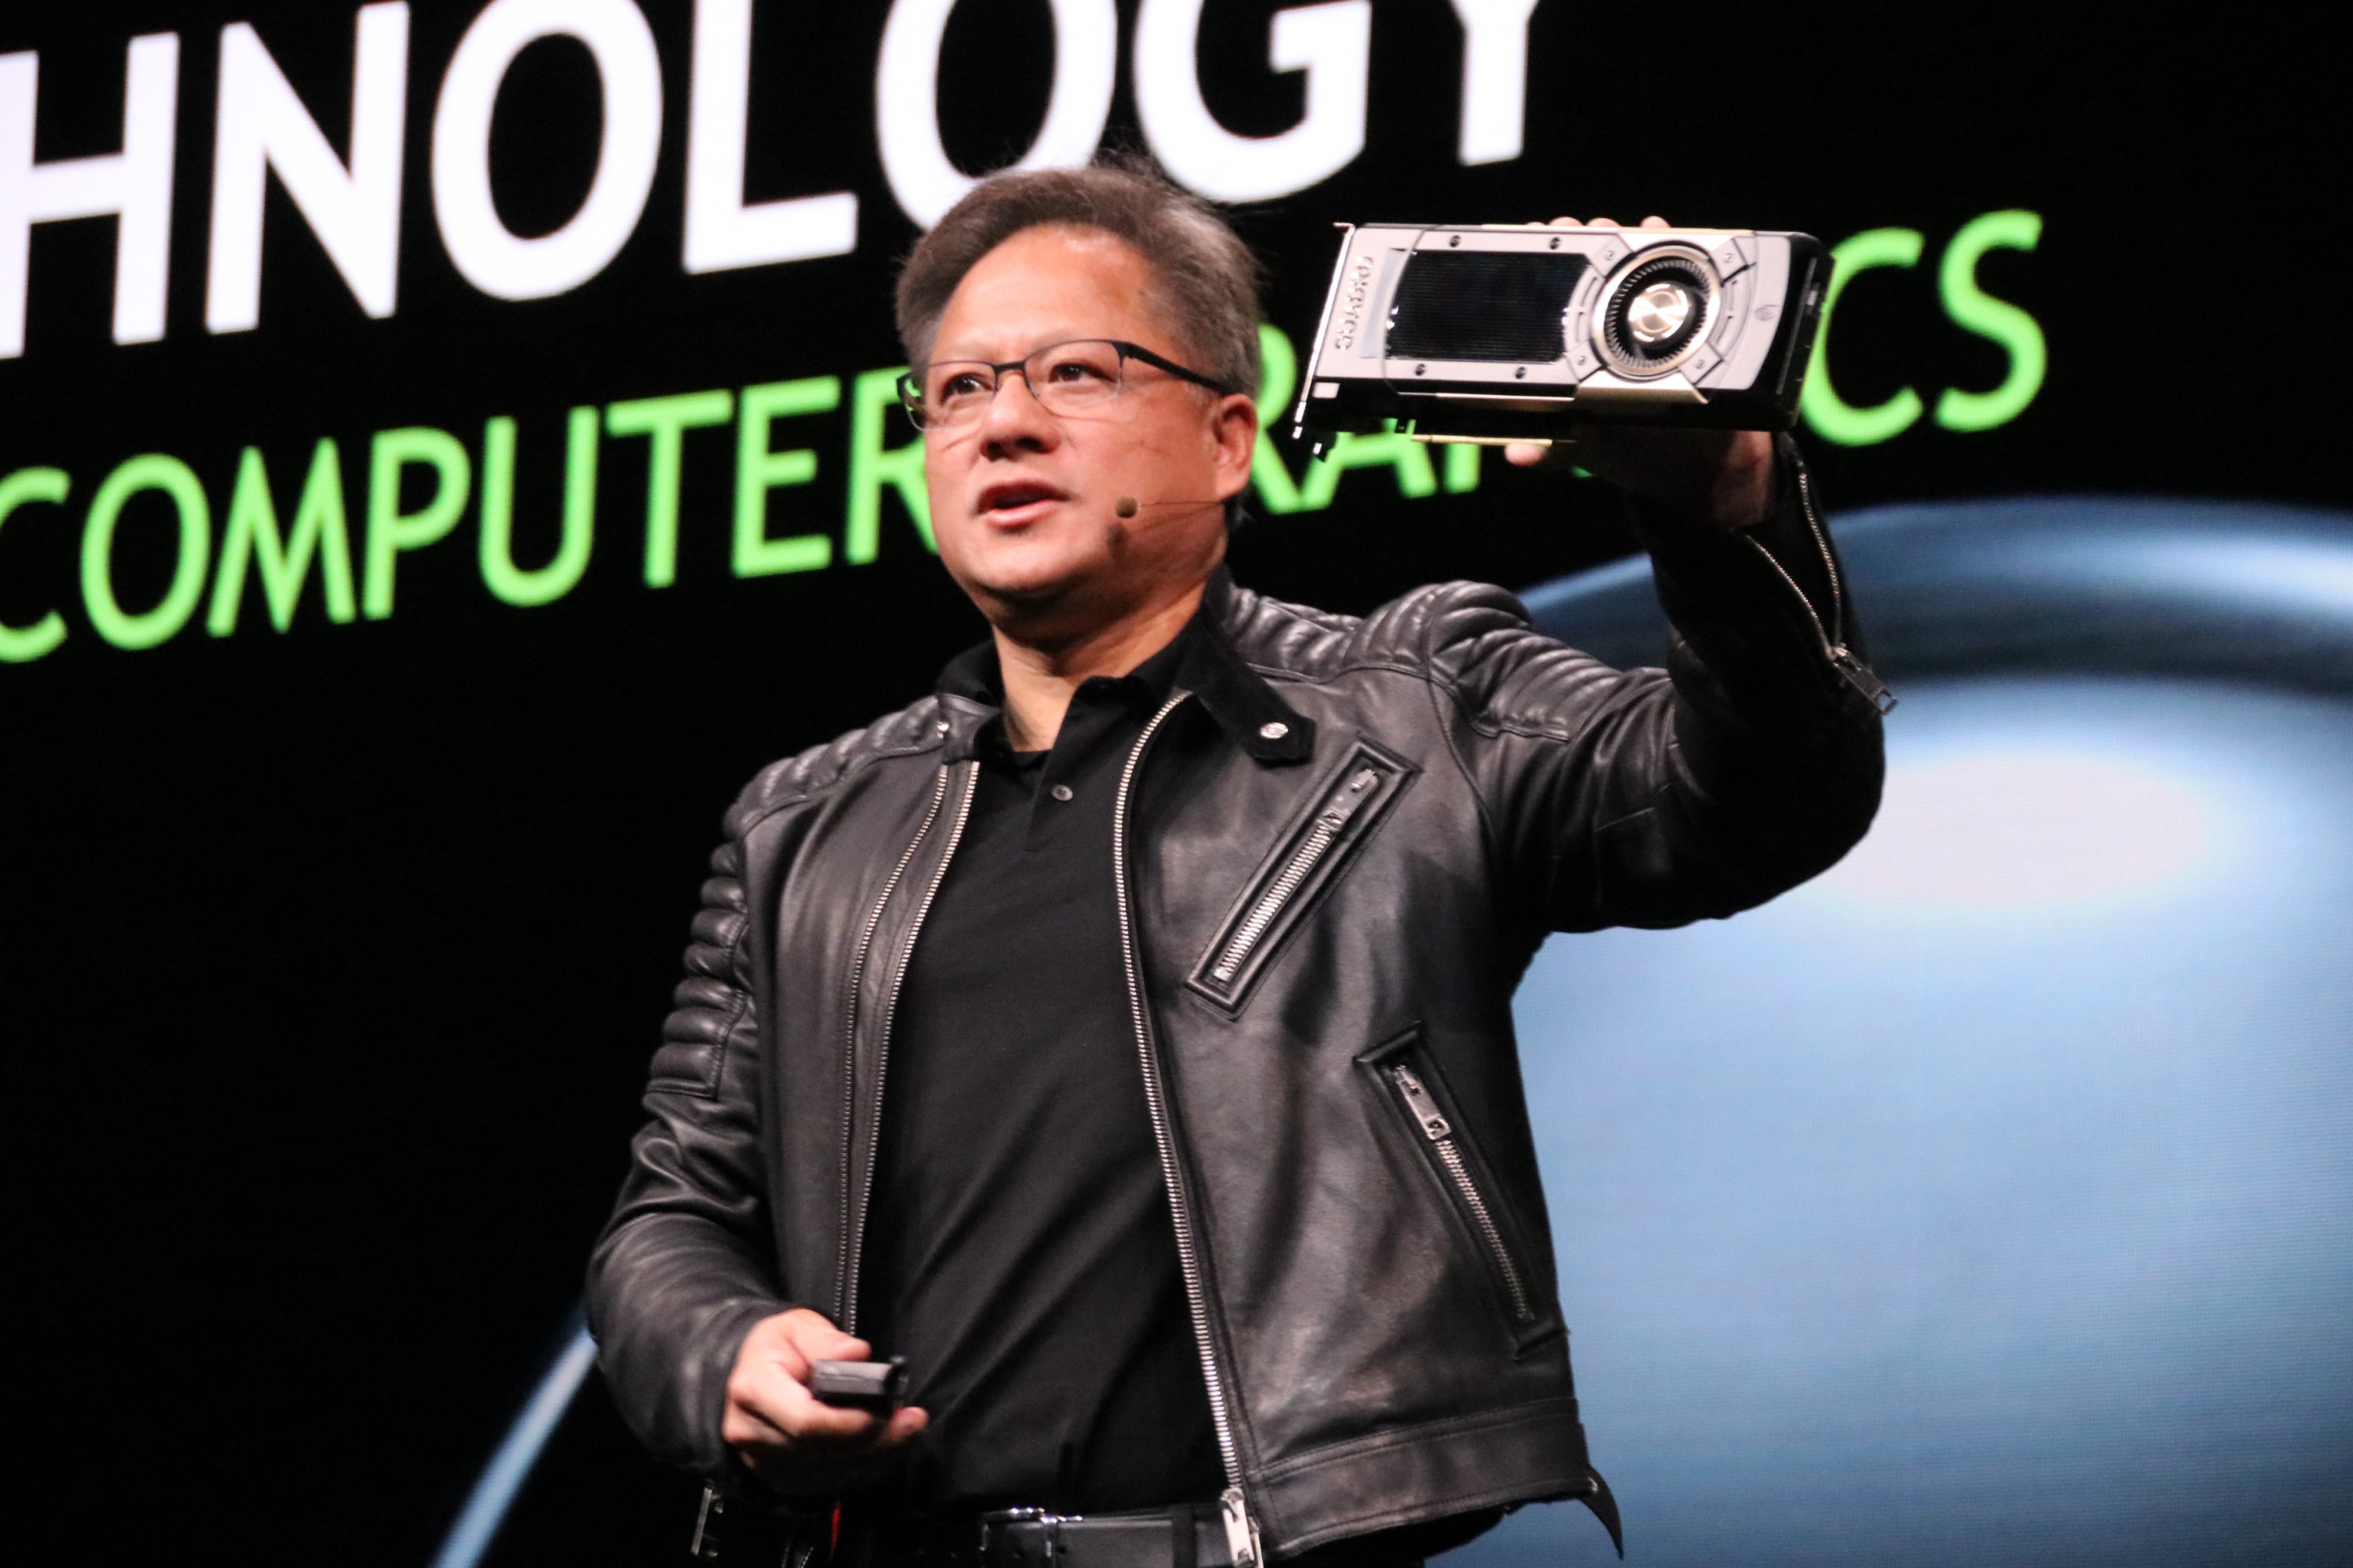 I asked Jensen Huang the CEO of Nvidia if Automous Vehicles